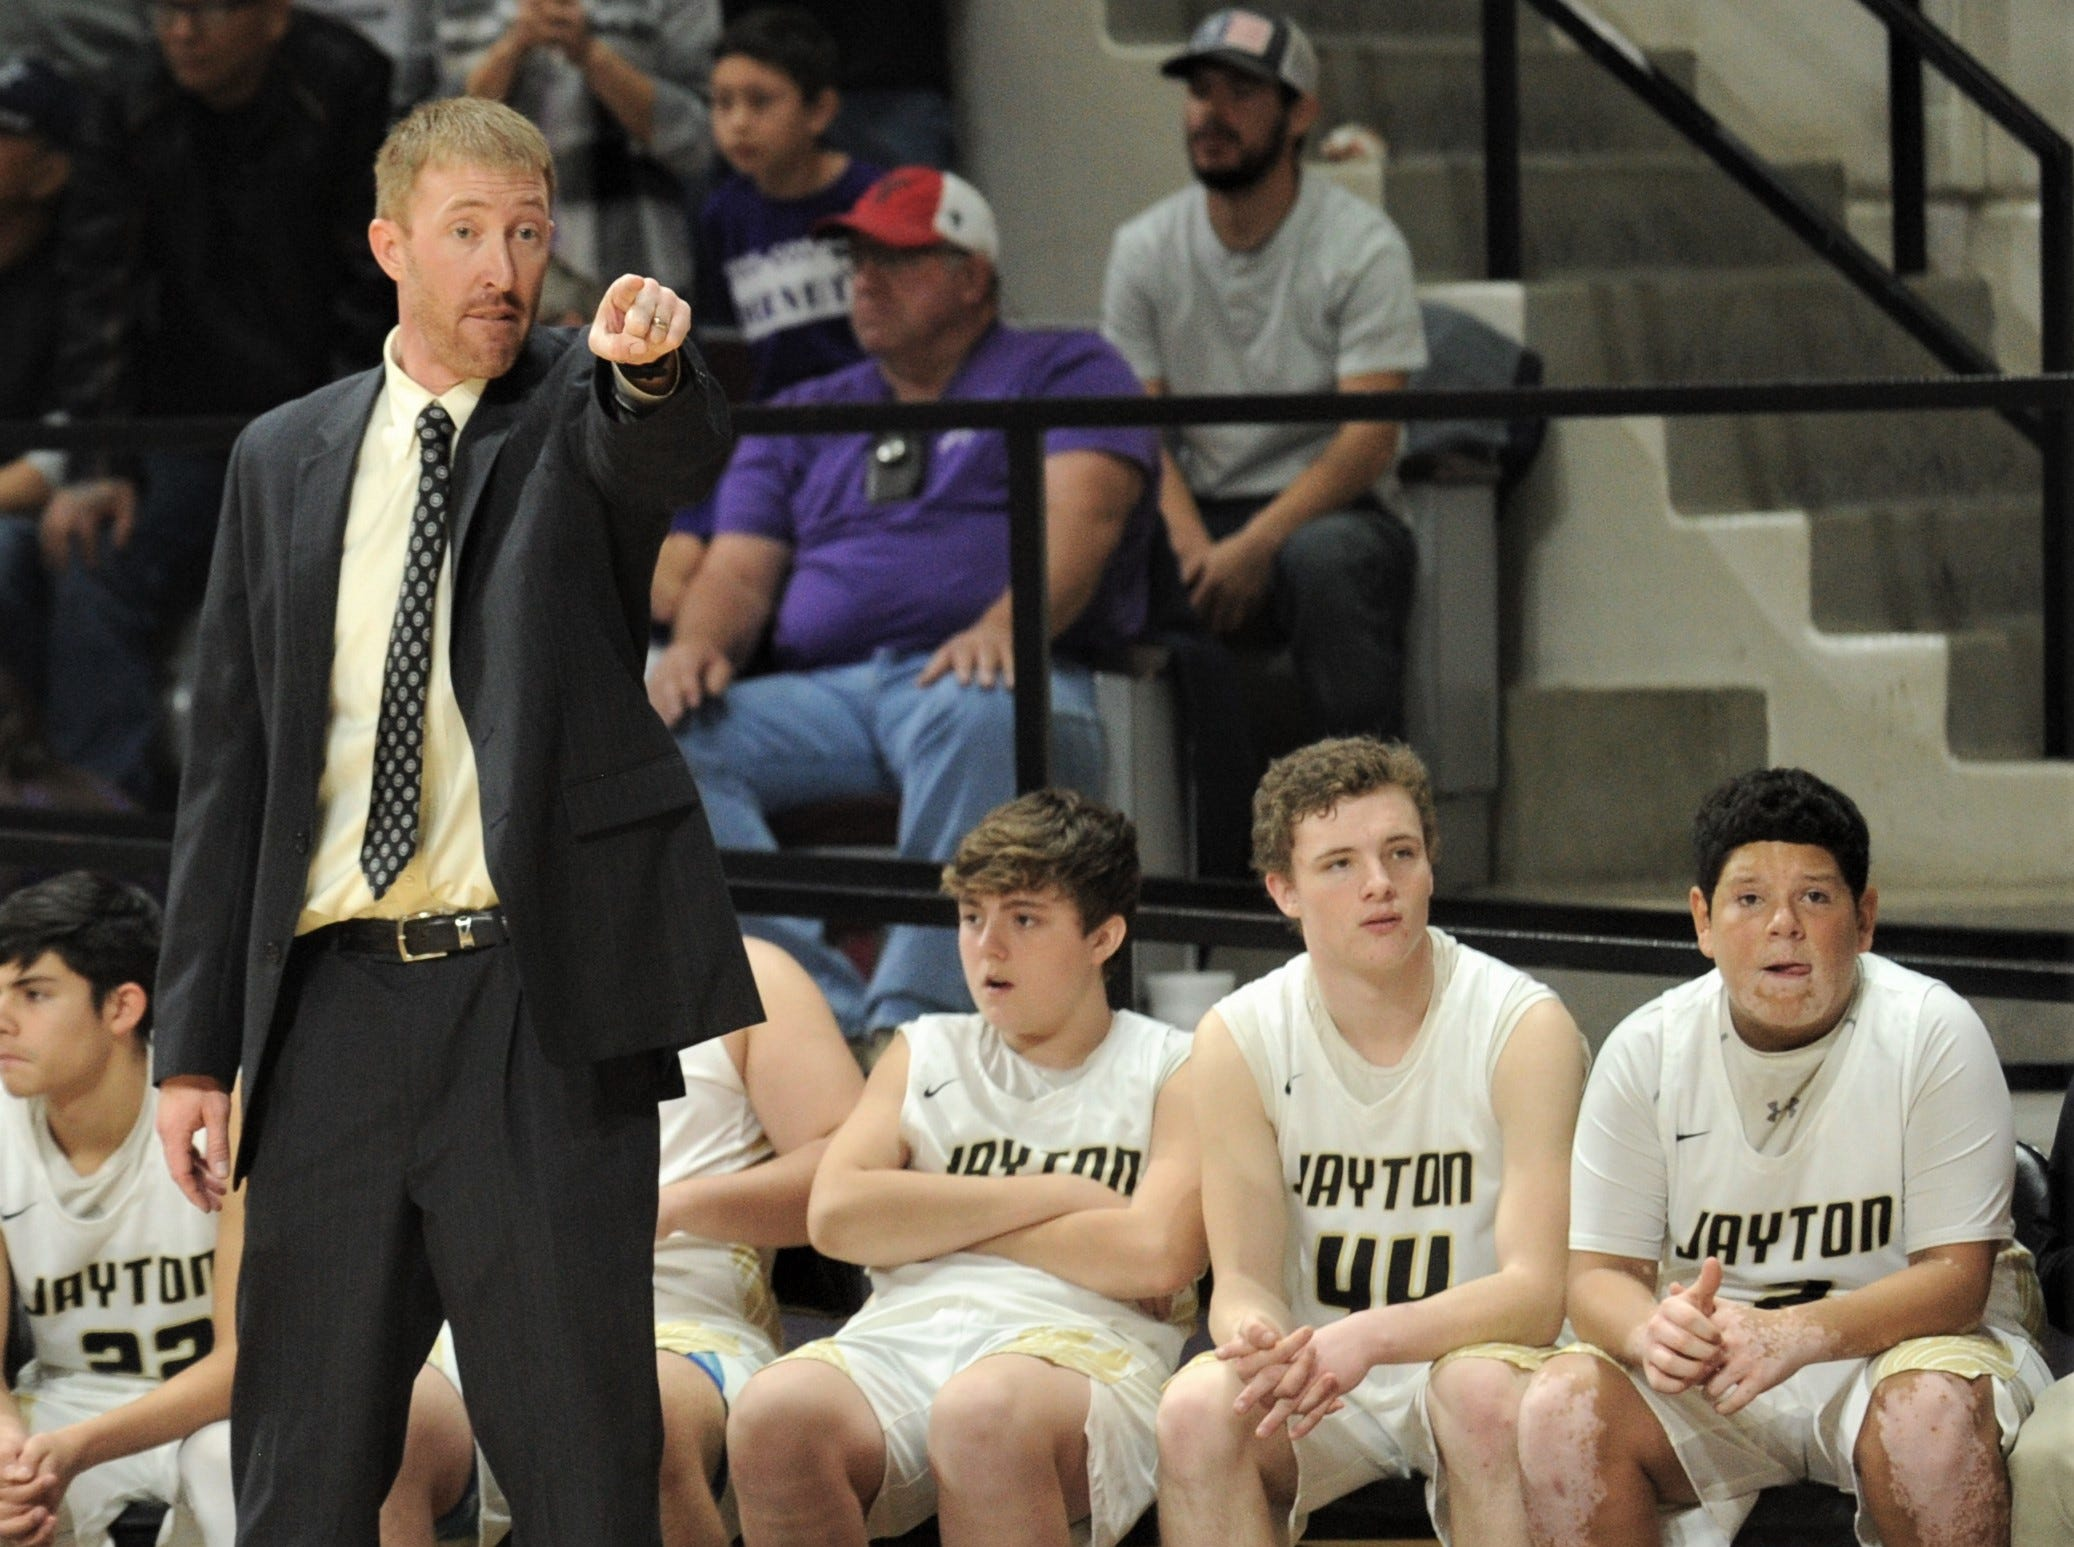 Jayton coach Ryan Bleiker, left, coaches his team against Irion County. The Jaybirds beat Irion County 47-32 in the Region II-1A championship game Saturday, March 2, 2019, at Abilene Christian's Moody Coliseum.